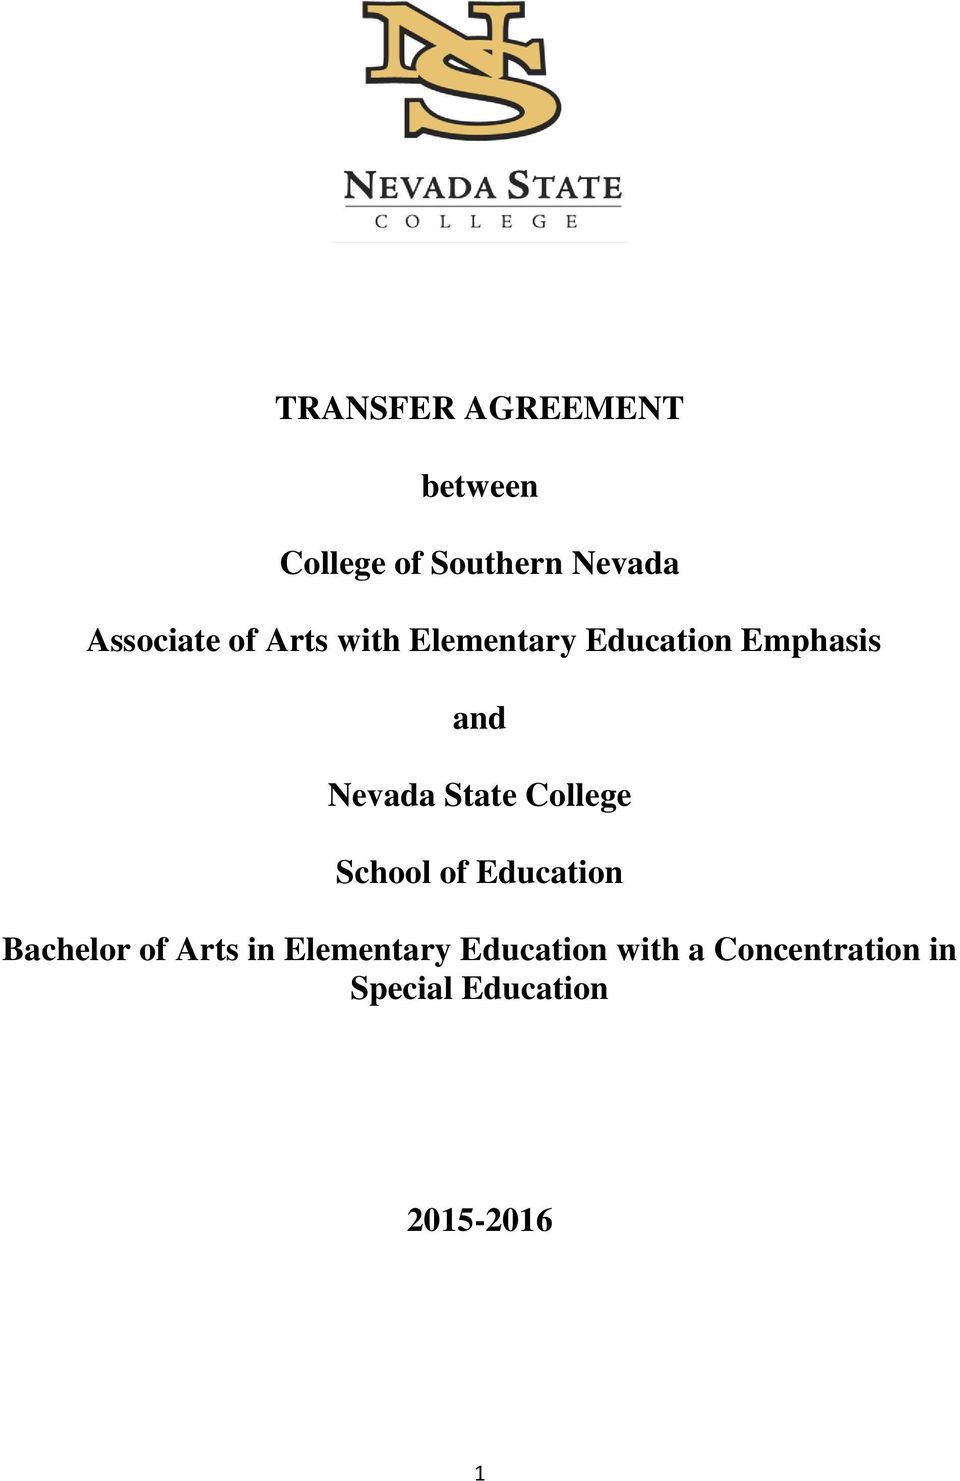 Nevada State College School of Education Bachelor of Arts in